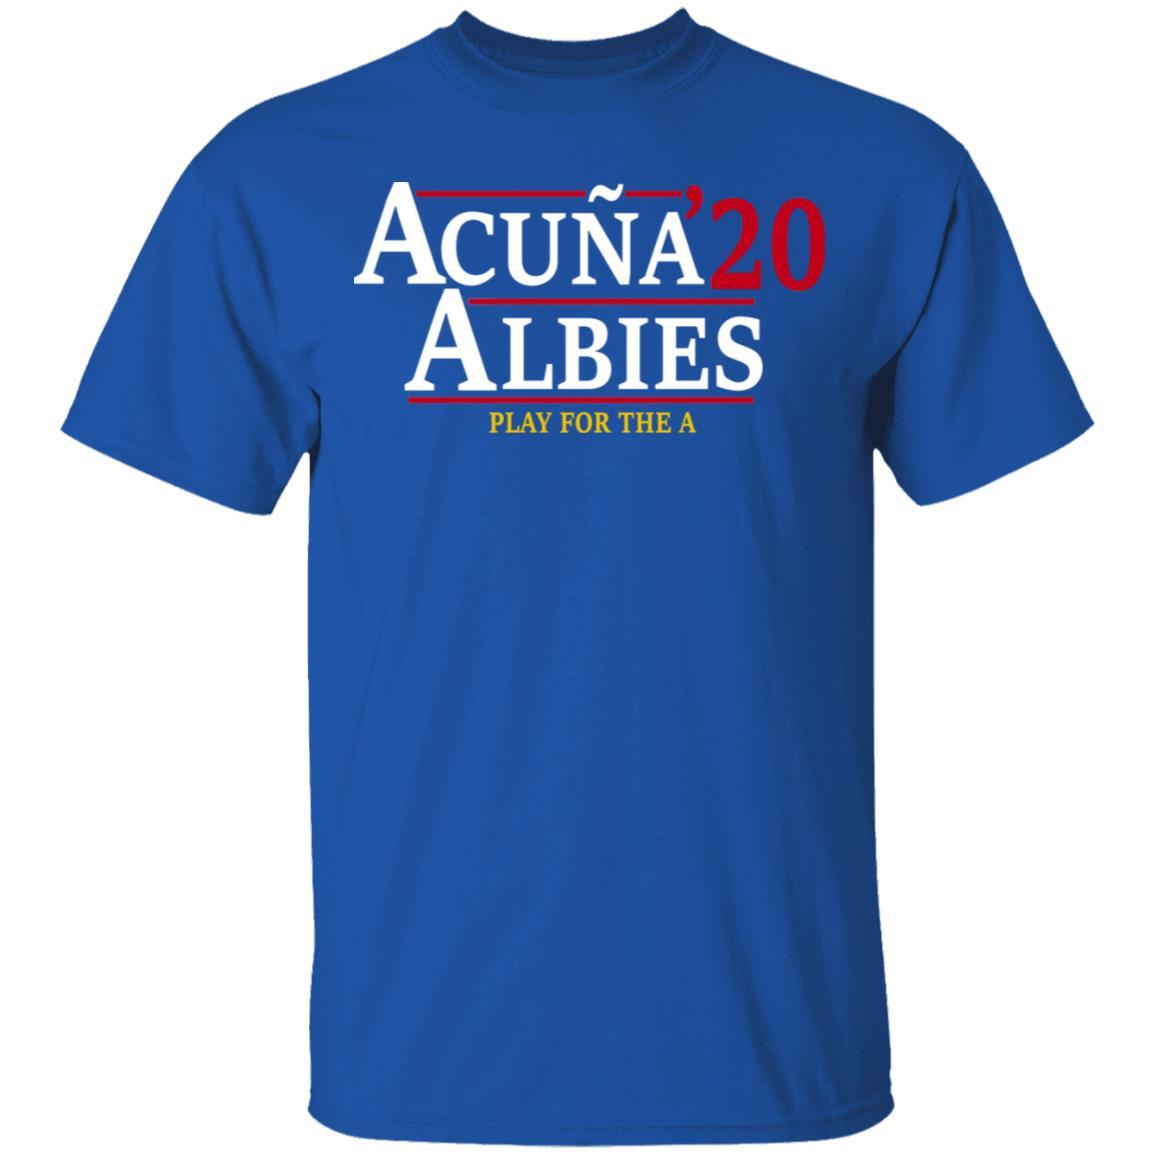 Acuna Albies 2020 Play For The A T-Shirts, Hoodies 1049-9971-88478048-48286 - Tee Ript